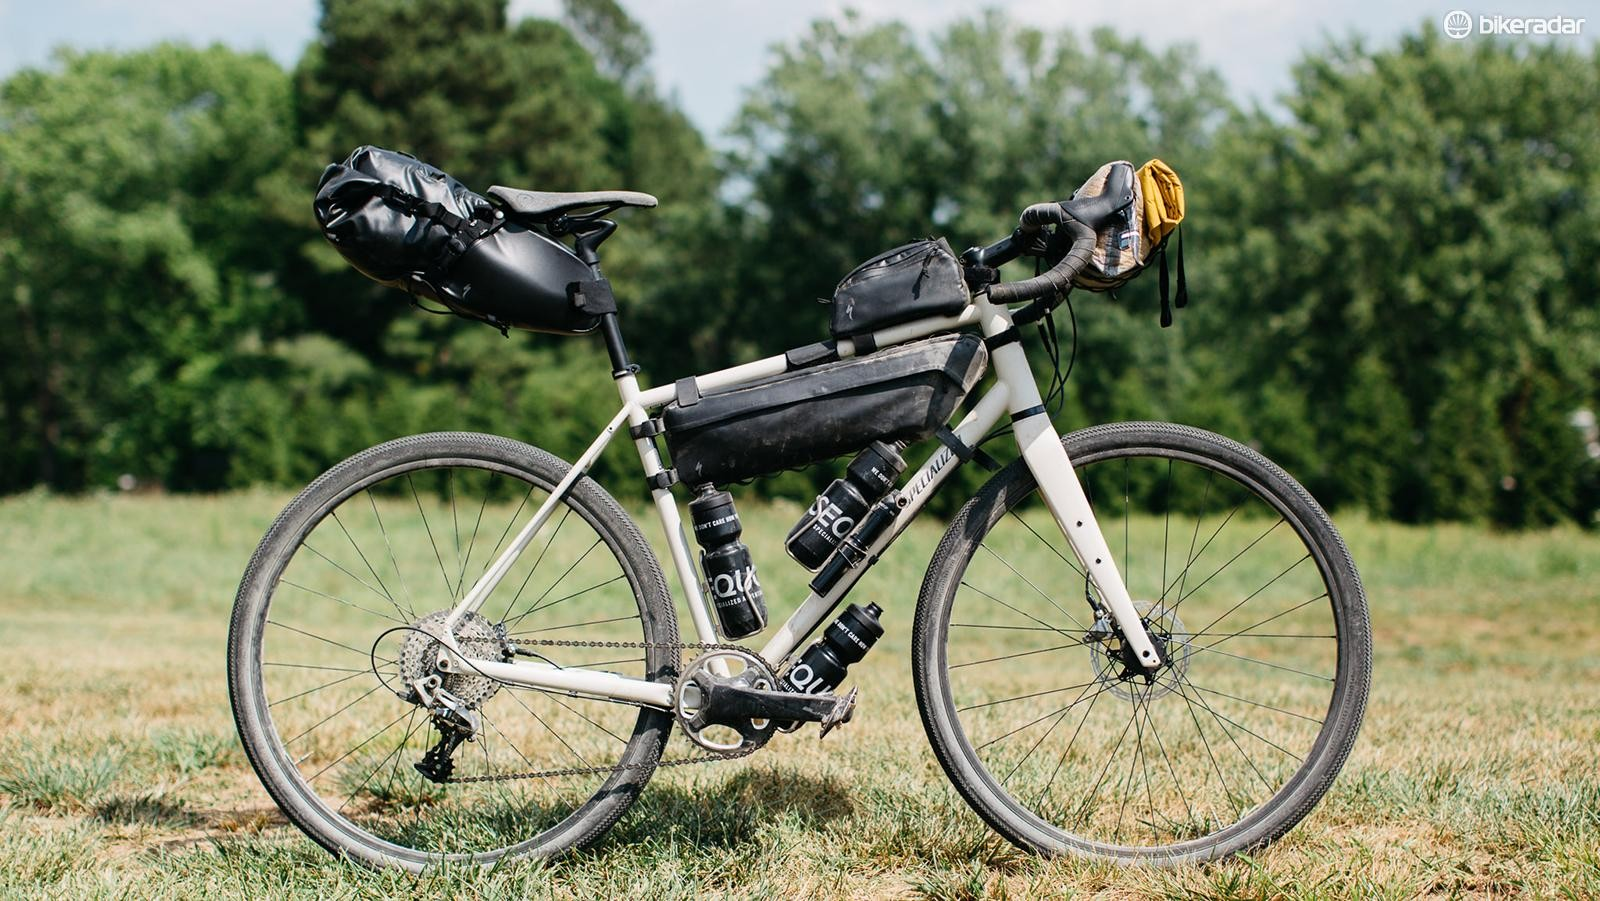 Specialized is rolling out a line of weather-resistant frame packs as part of the company's Adventure Gear collection